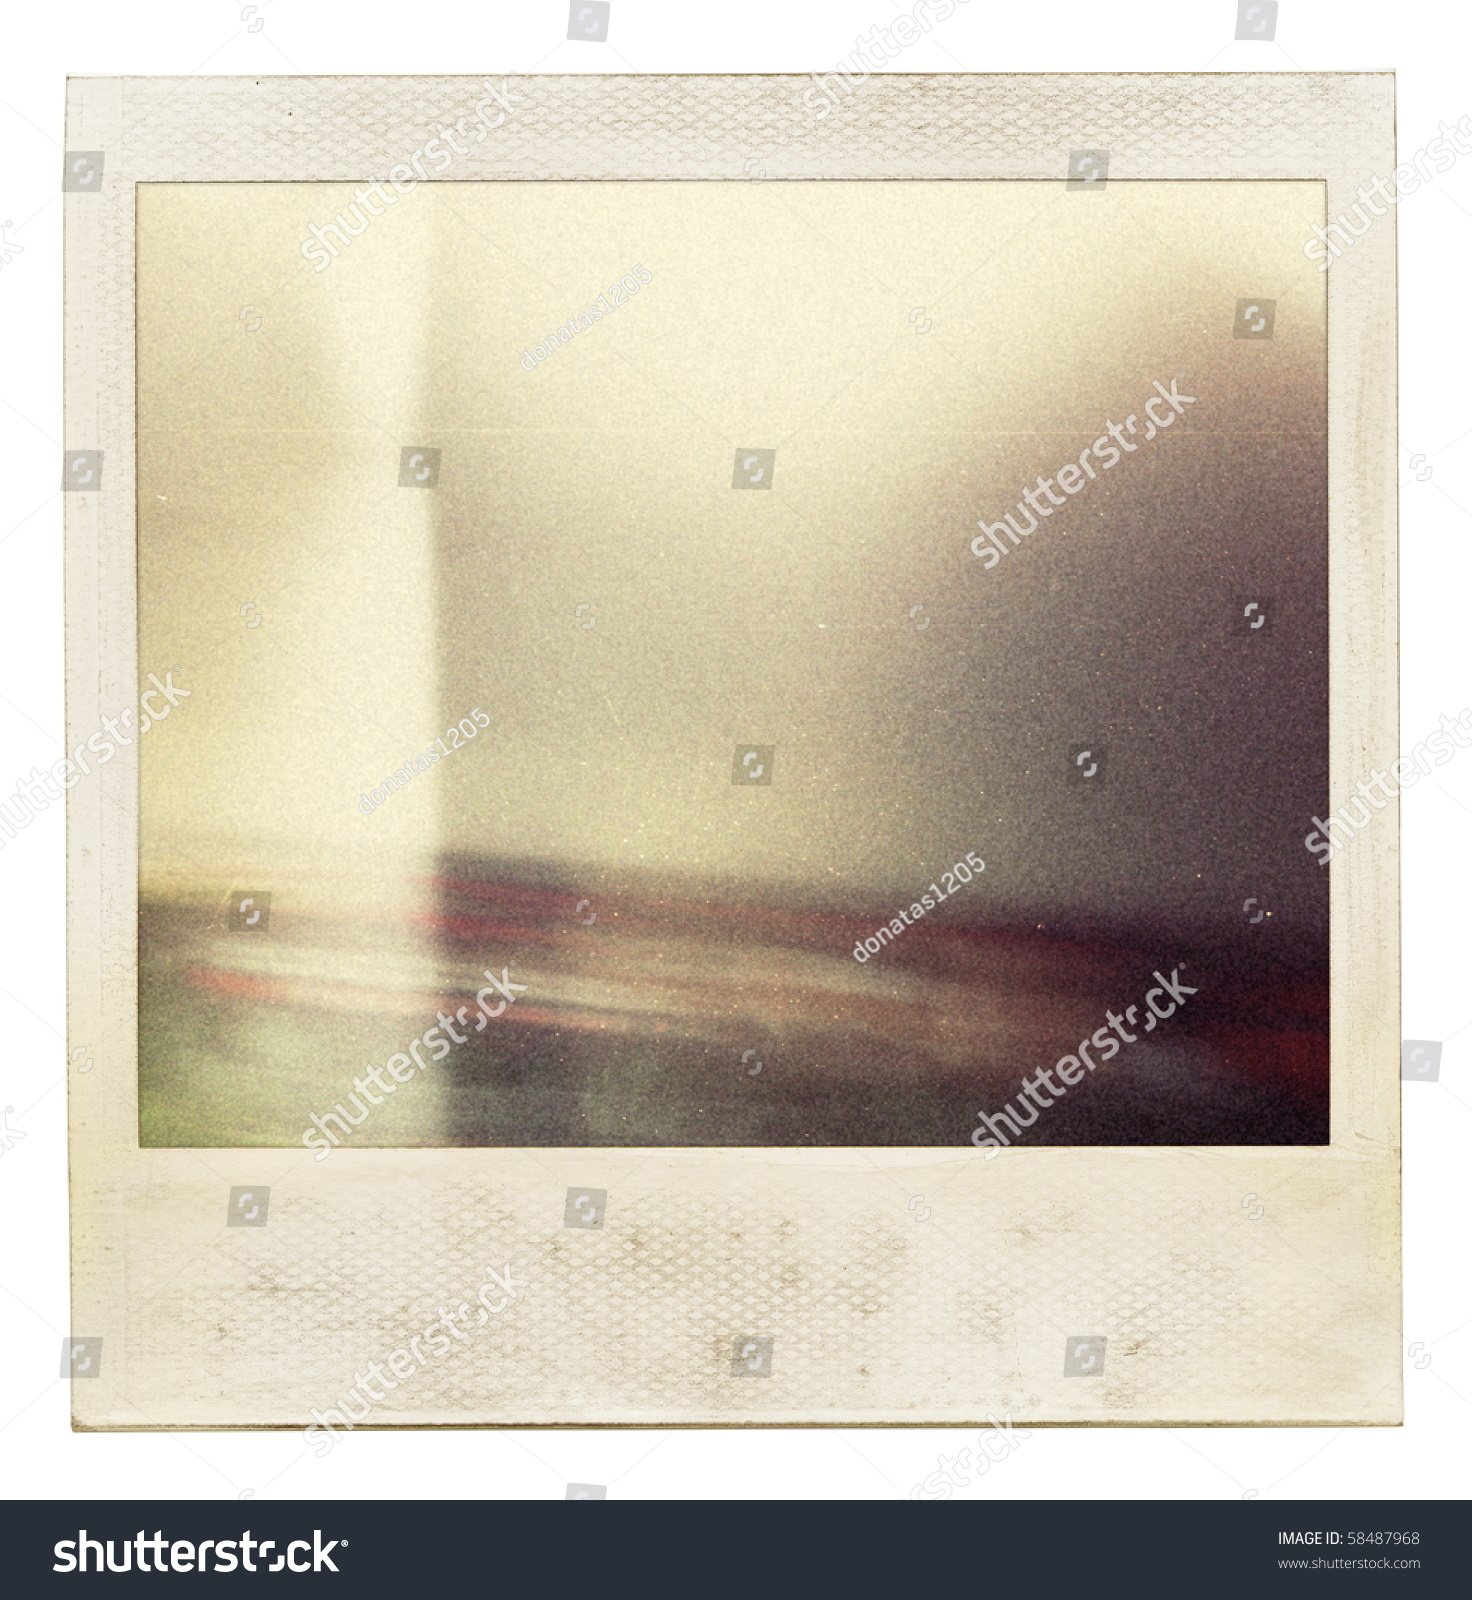 designed grungy instant film frame with abstract filling grain added as vintage effect